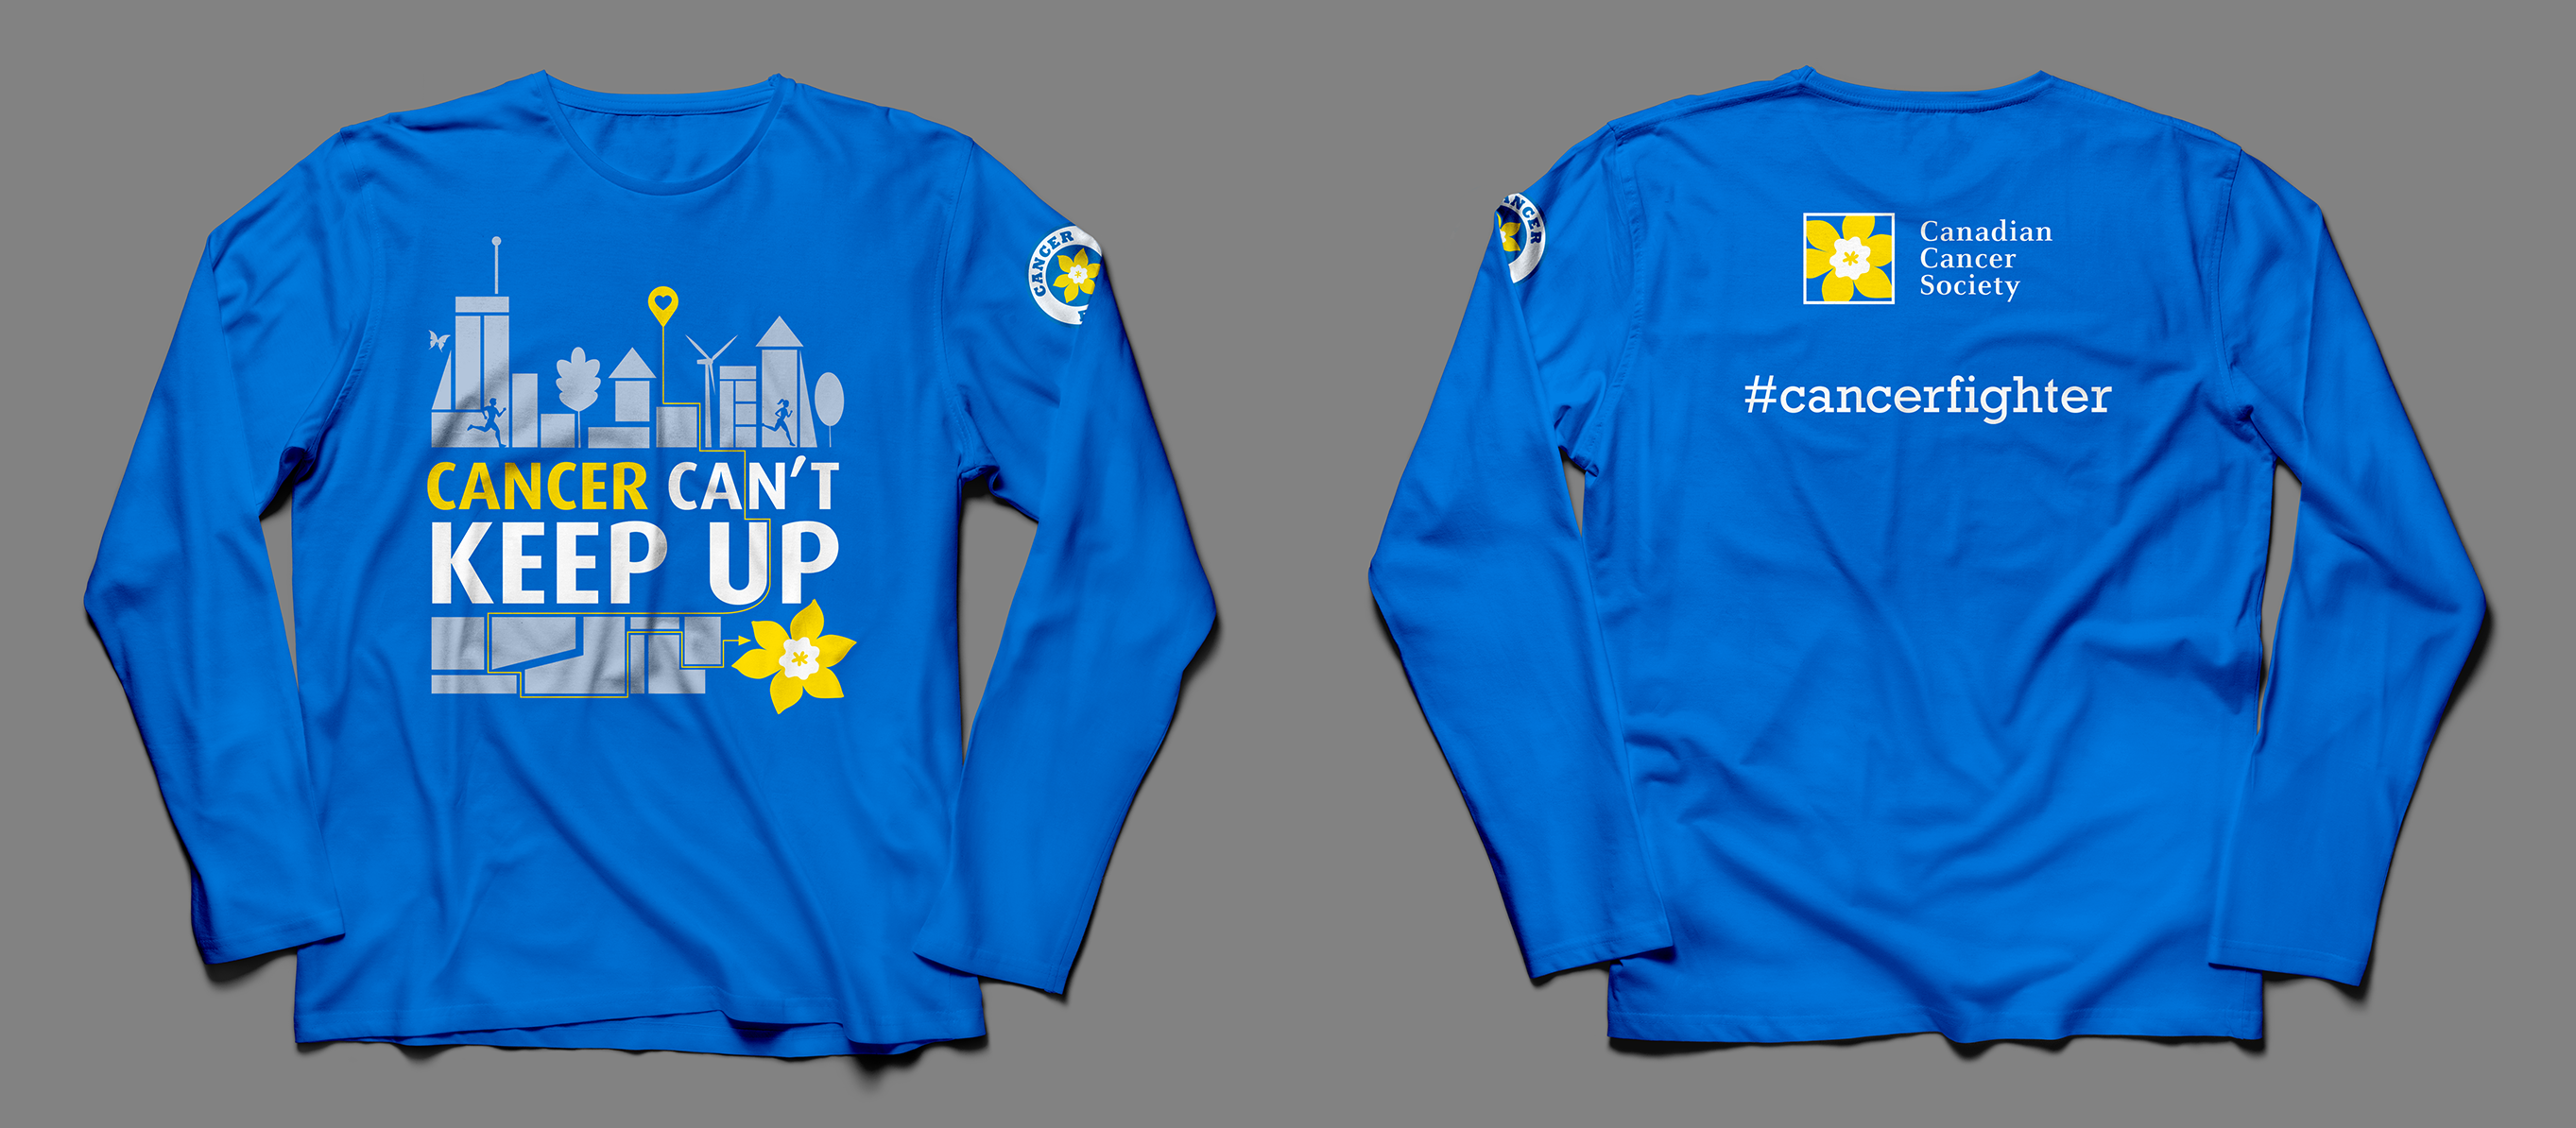 Canadian Cancer Society Running Shirt